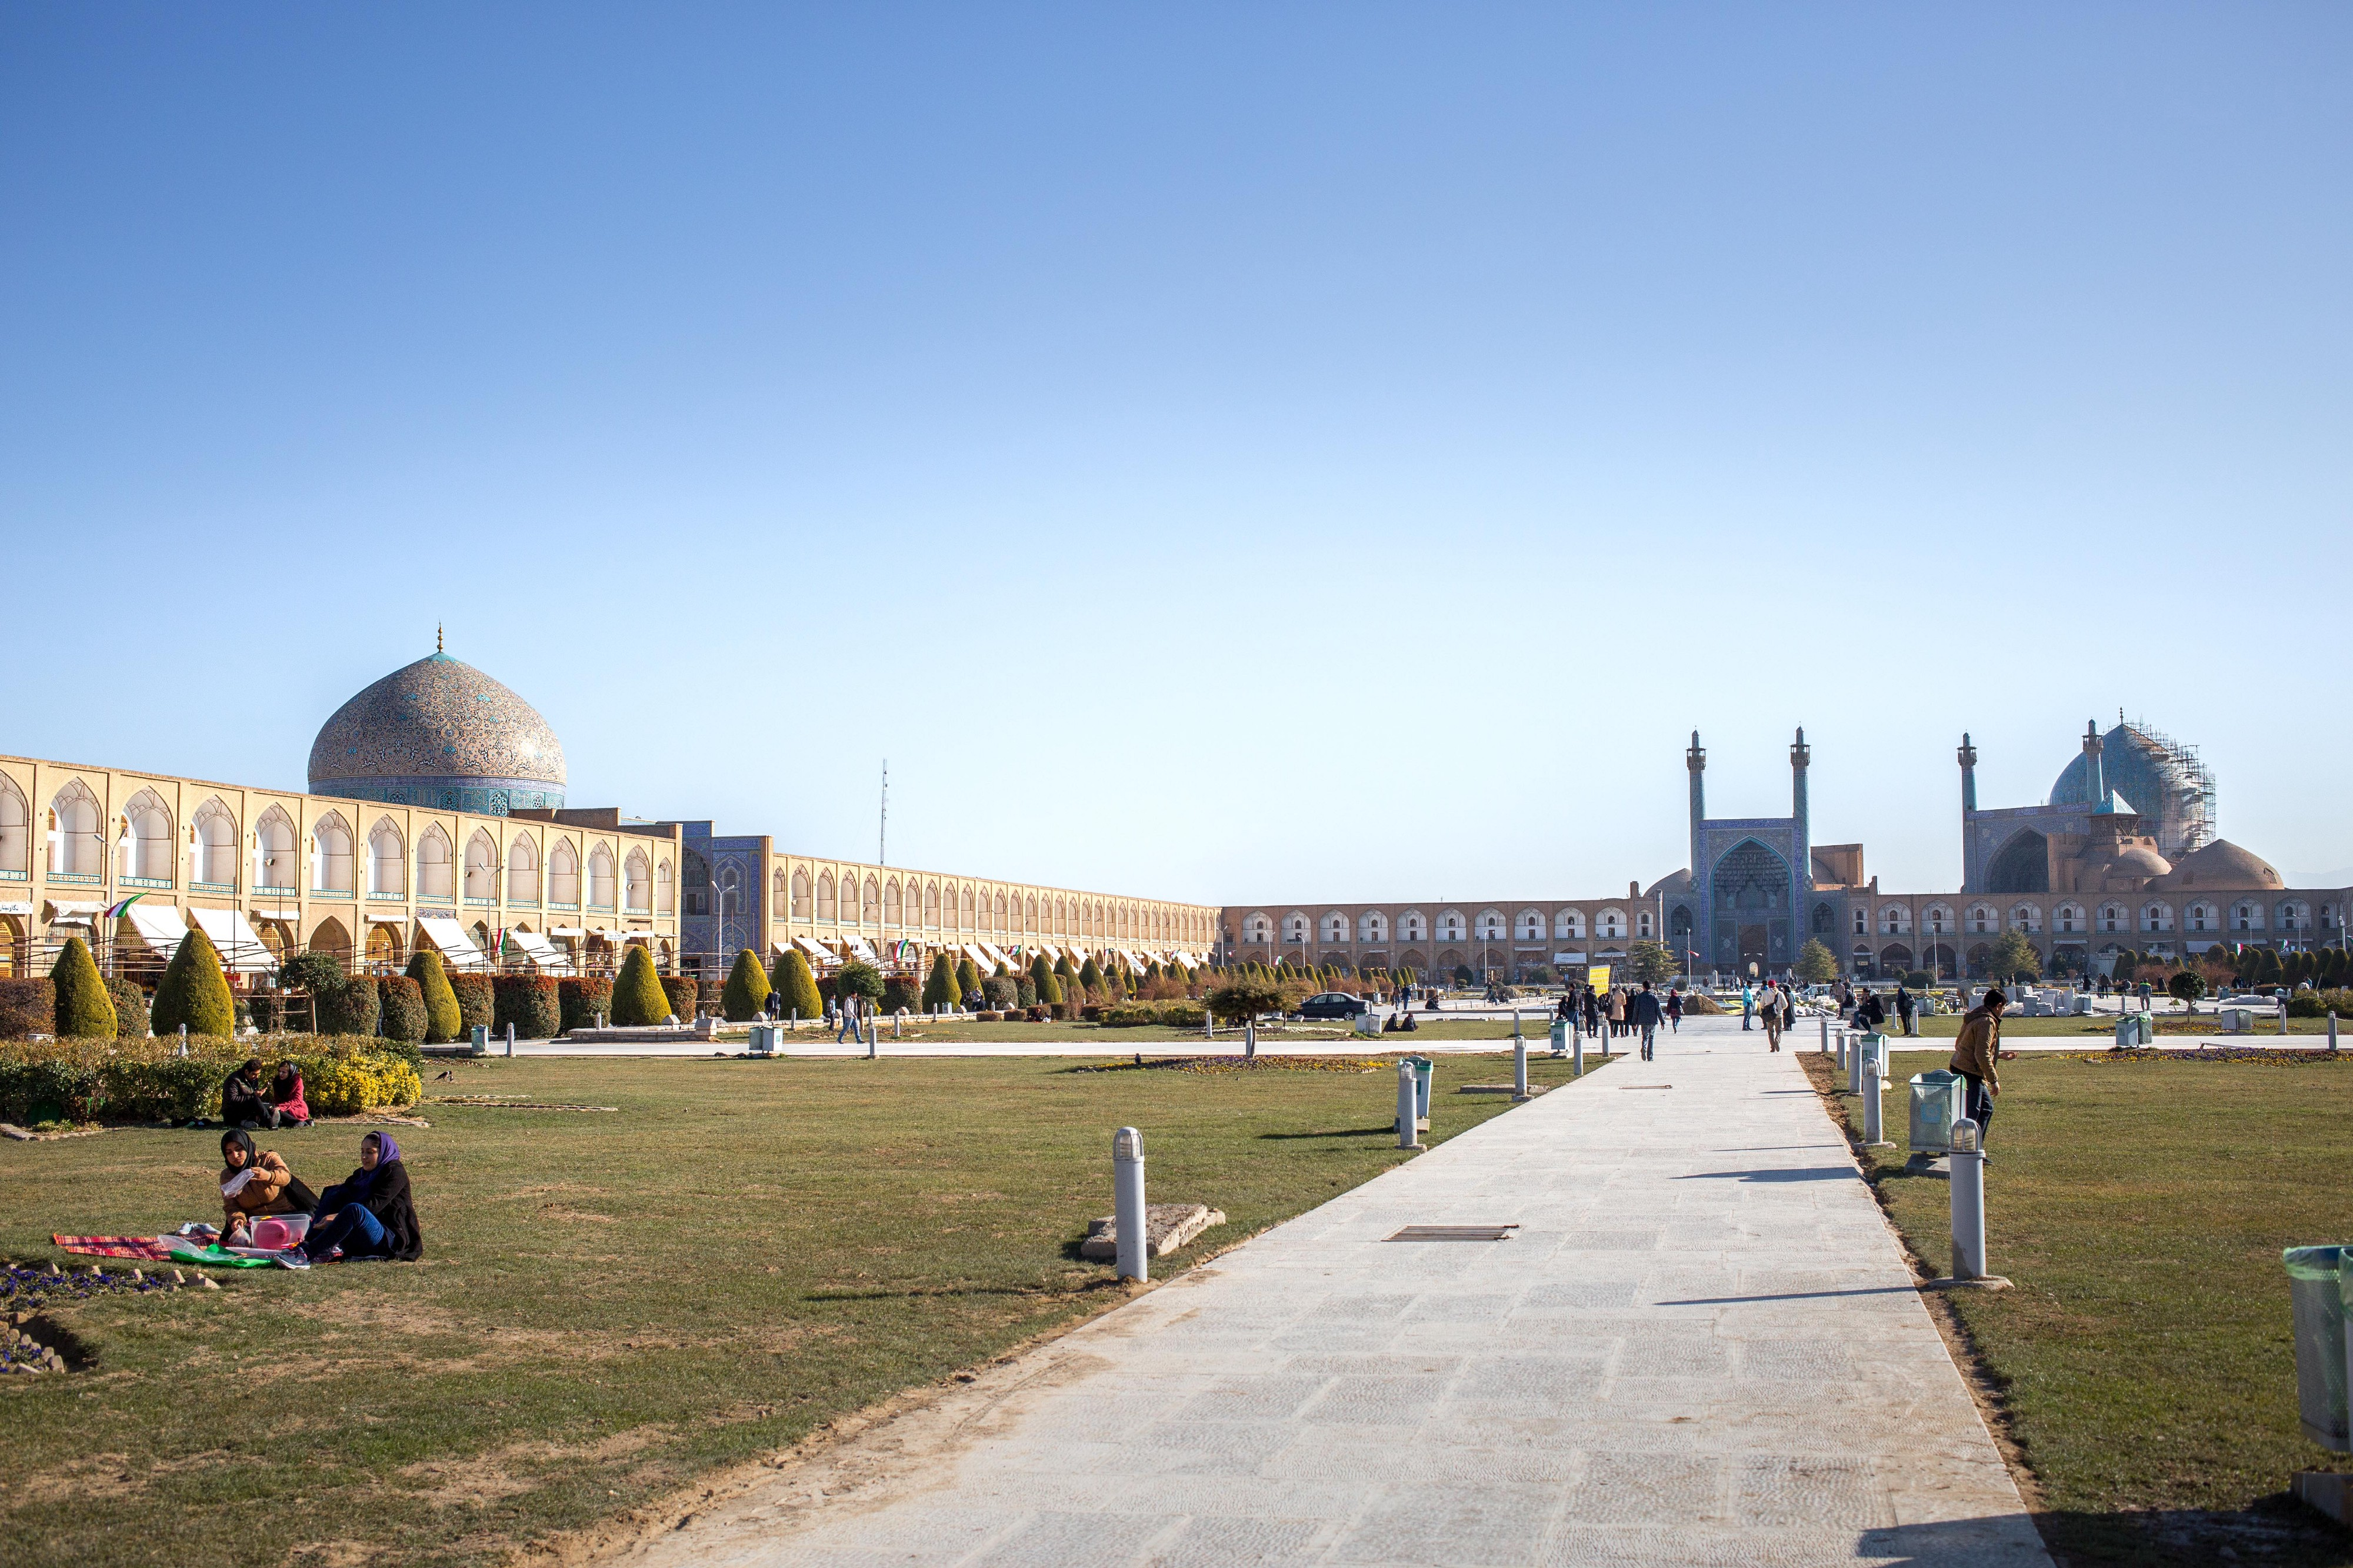 Naghsh-e Jahan Square, also known as Imam Square